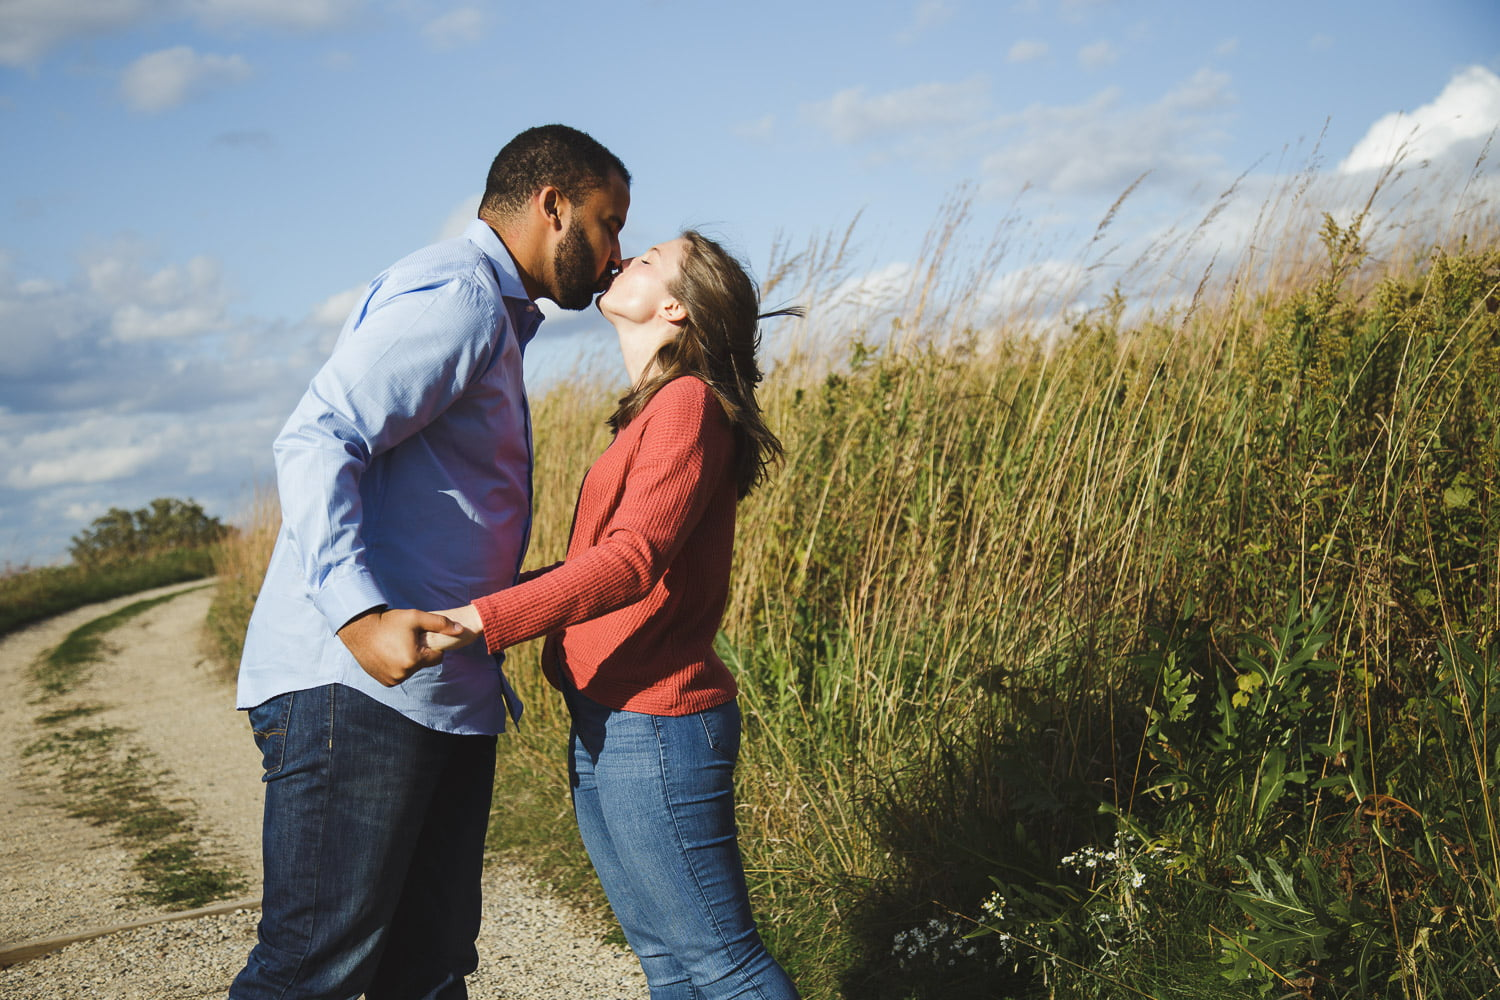 fun engagement photography in northfield mn